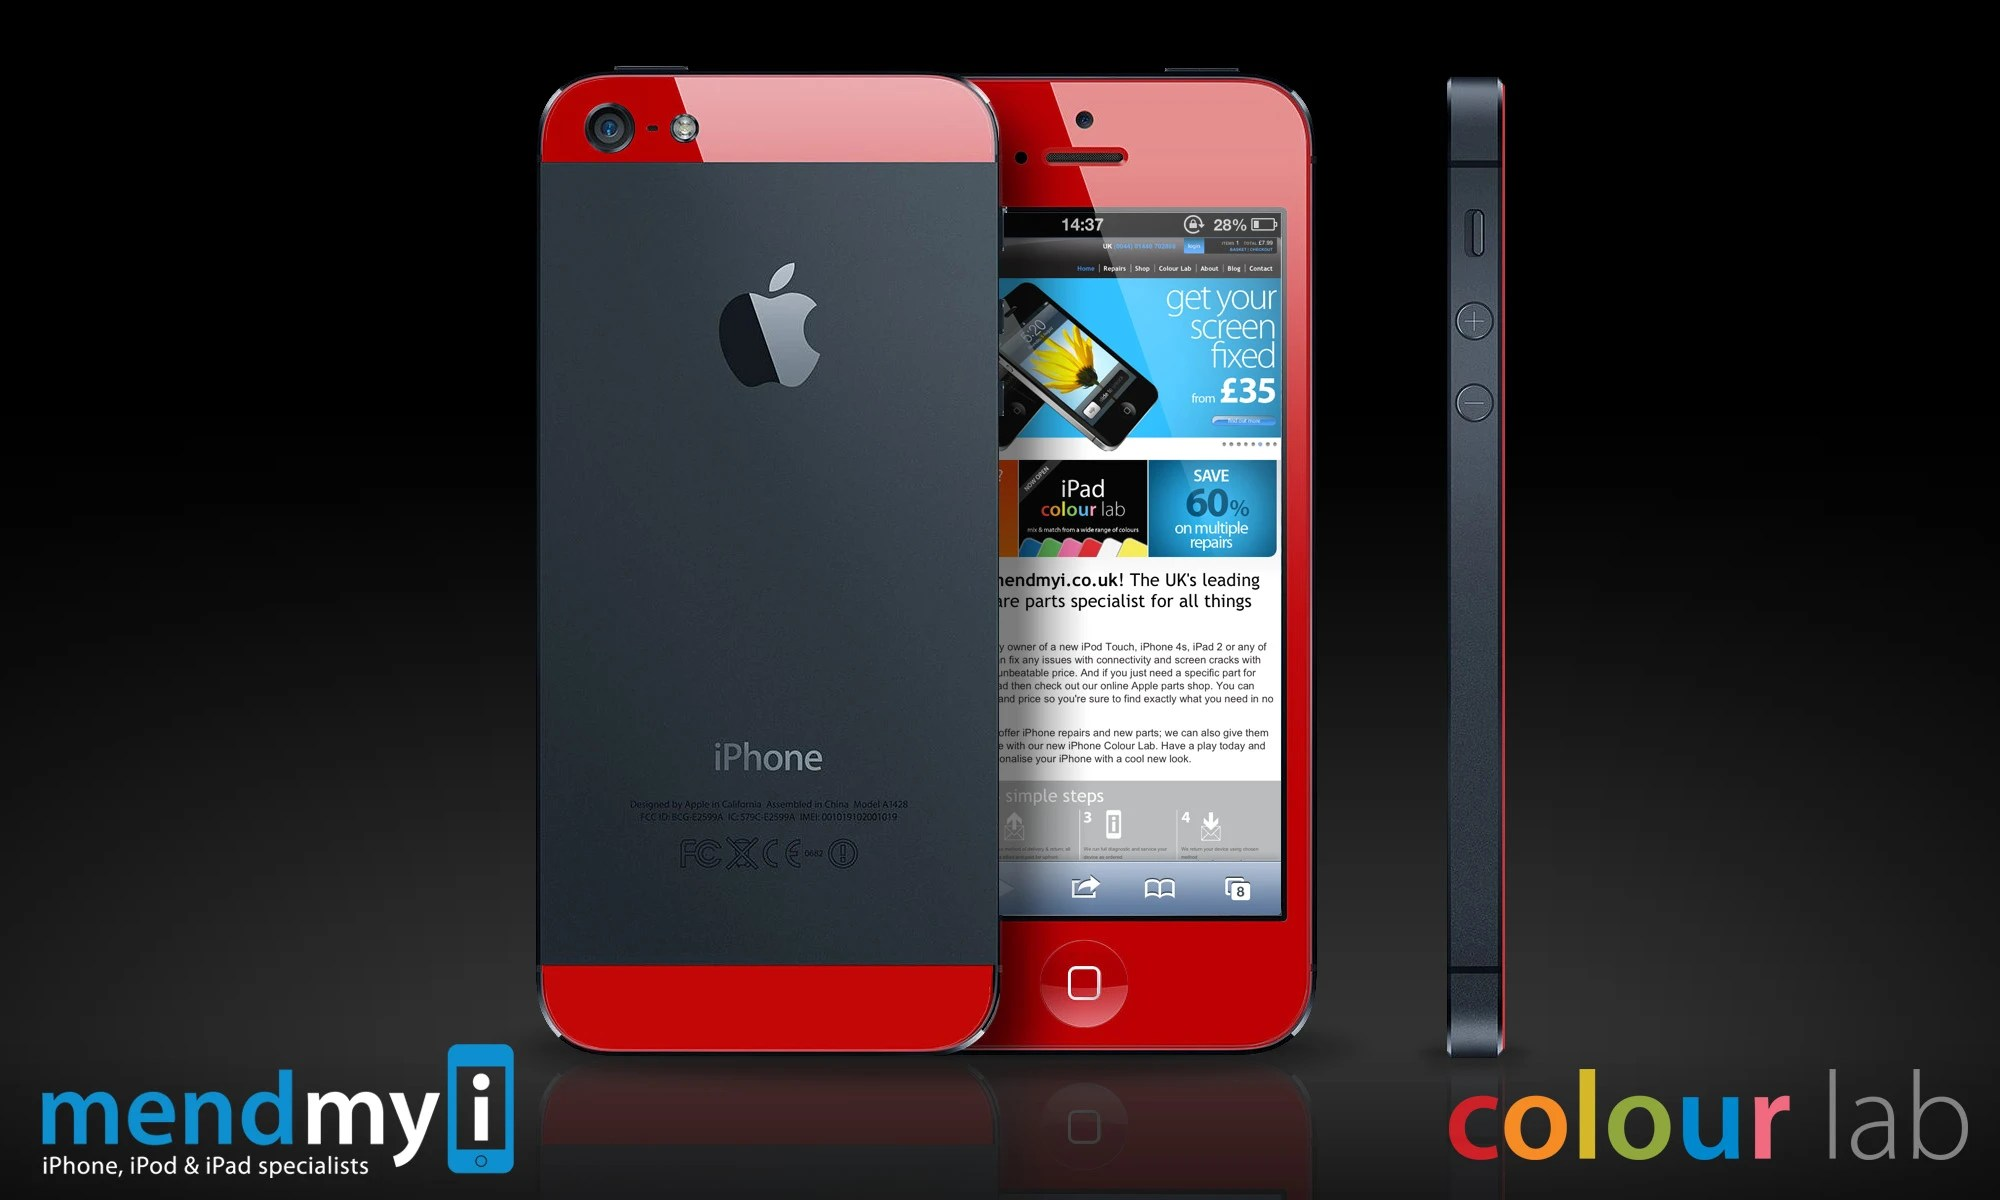 Iphone Product Red Wallpaper Here Is How To Get A Blue Red Or Pink Iphone 5